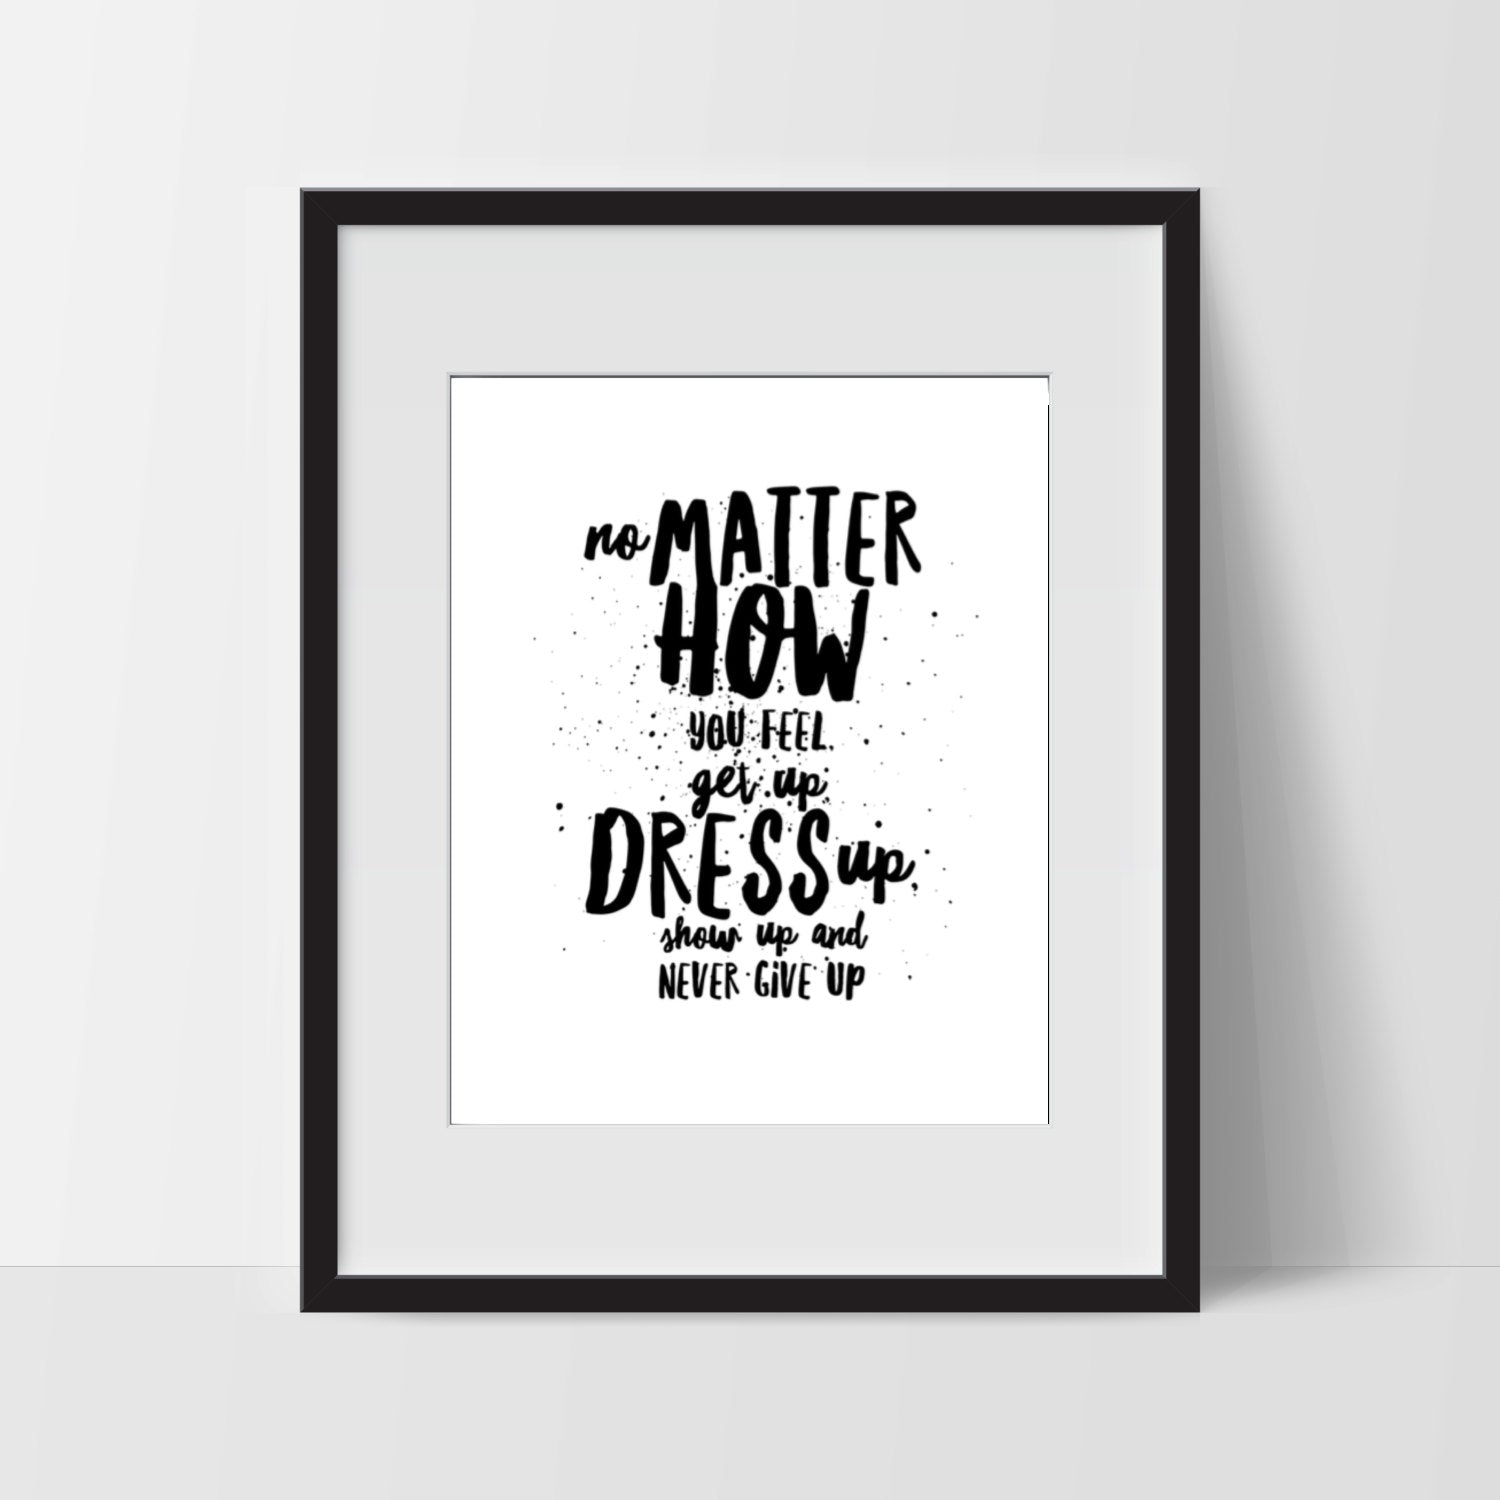 Motivational Print Art, Motivational Art, Motivation Printable, Digital Art Print, Typography Print, Instant Download, Modern, Black